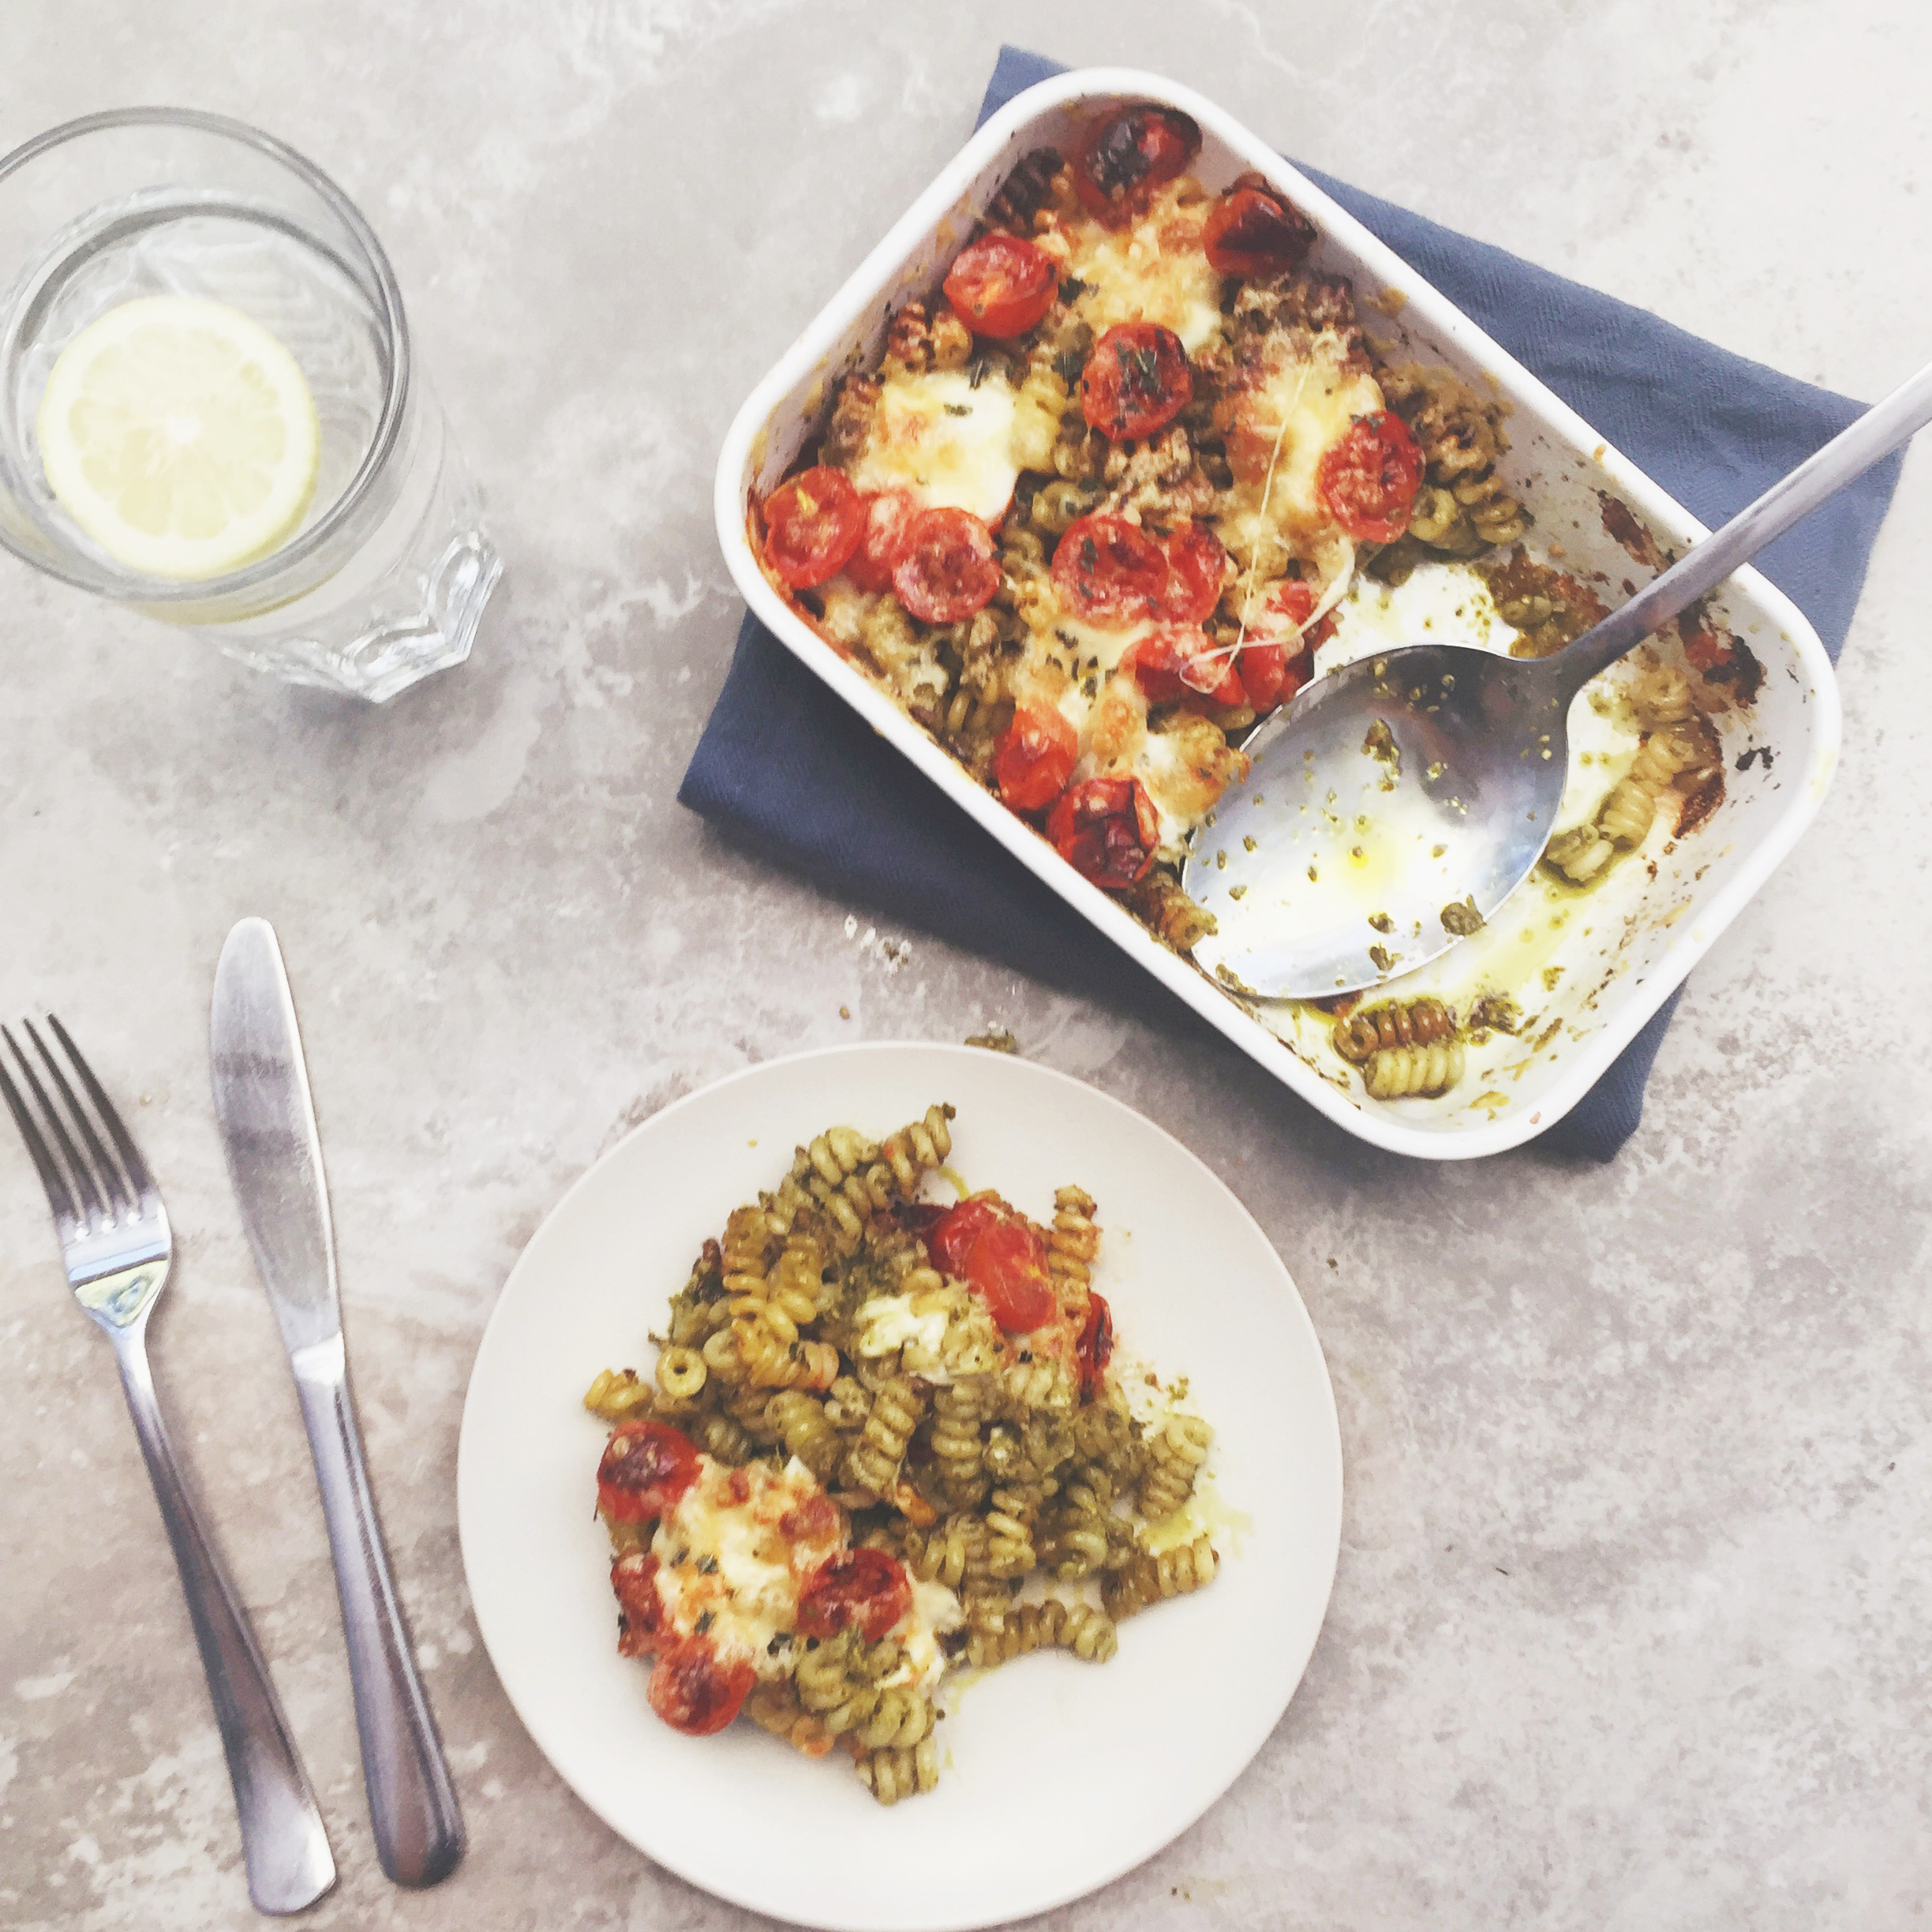 Cheesy Pesto Pasta Bake